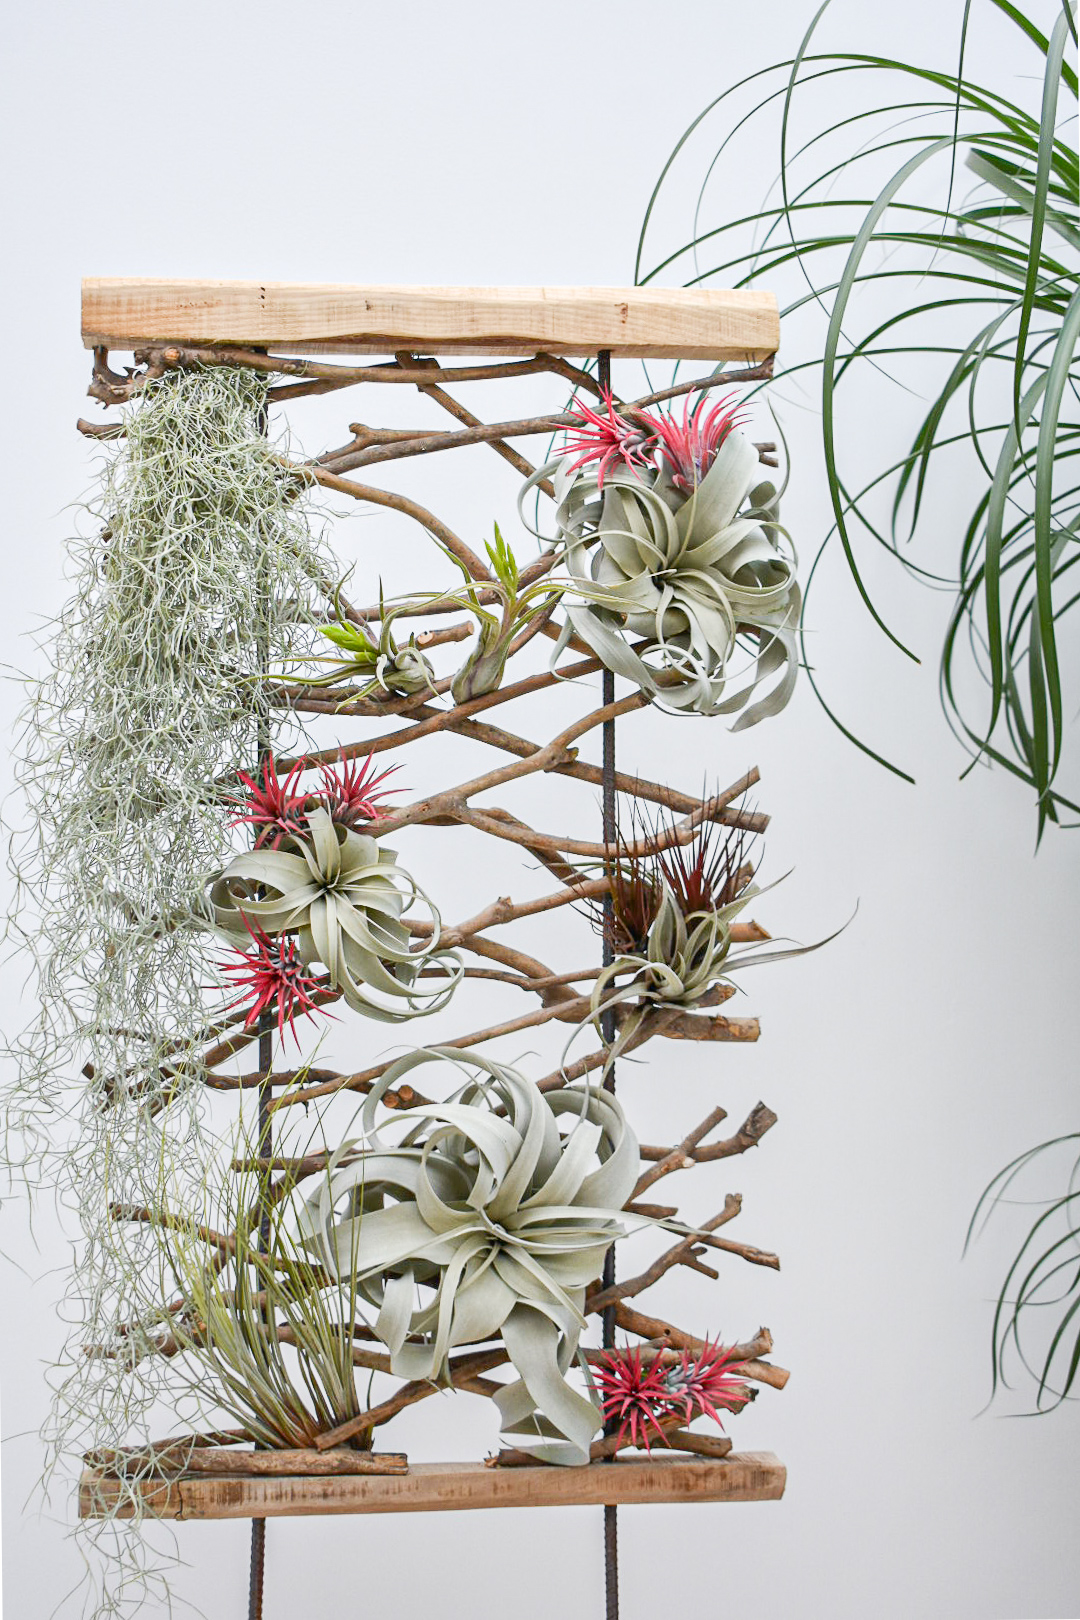 Tillandsia creation by Corsa Plant